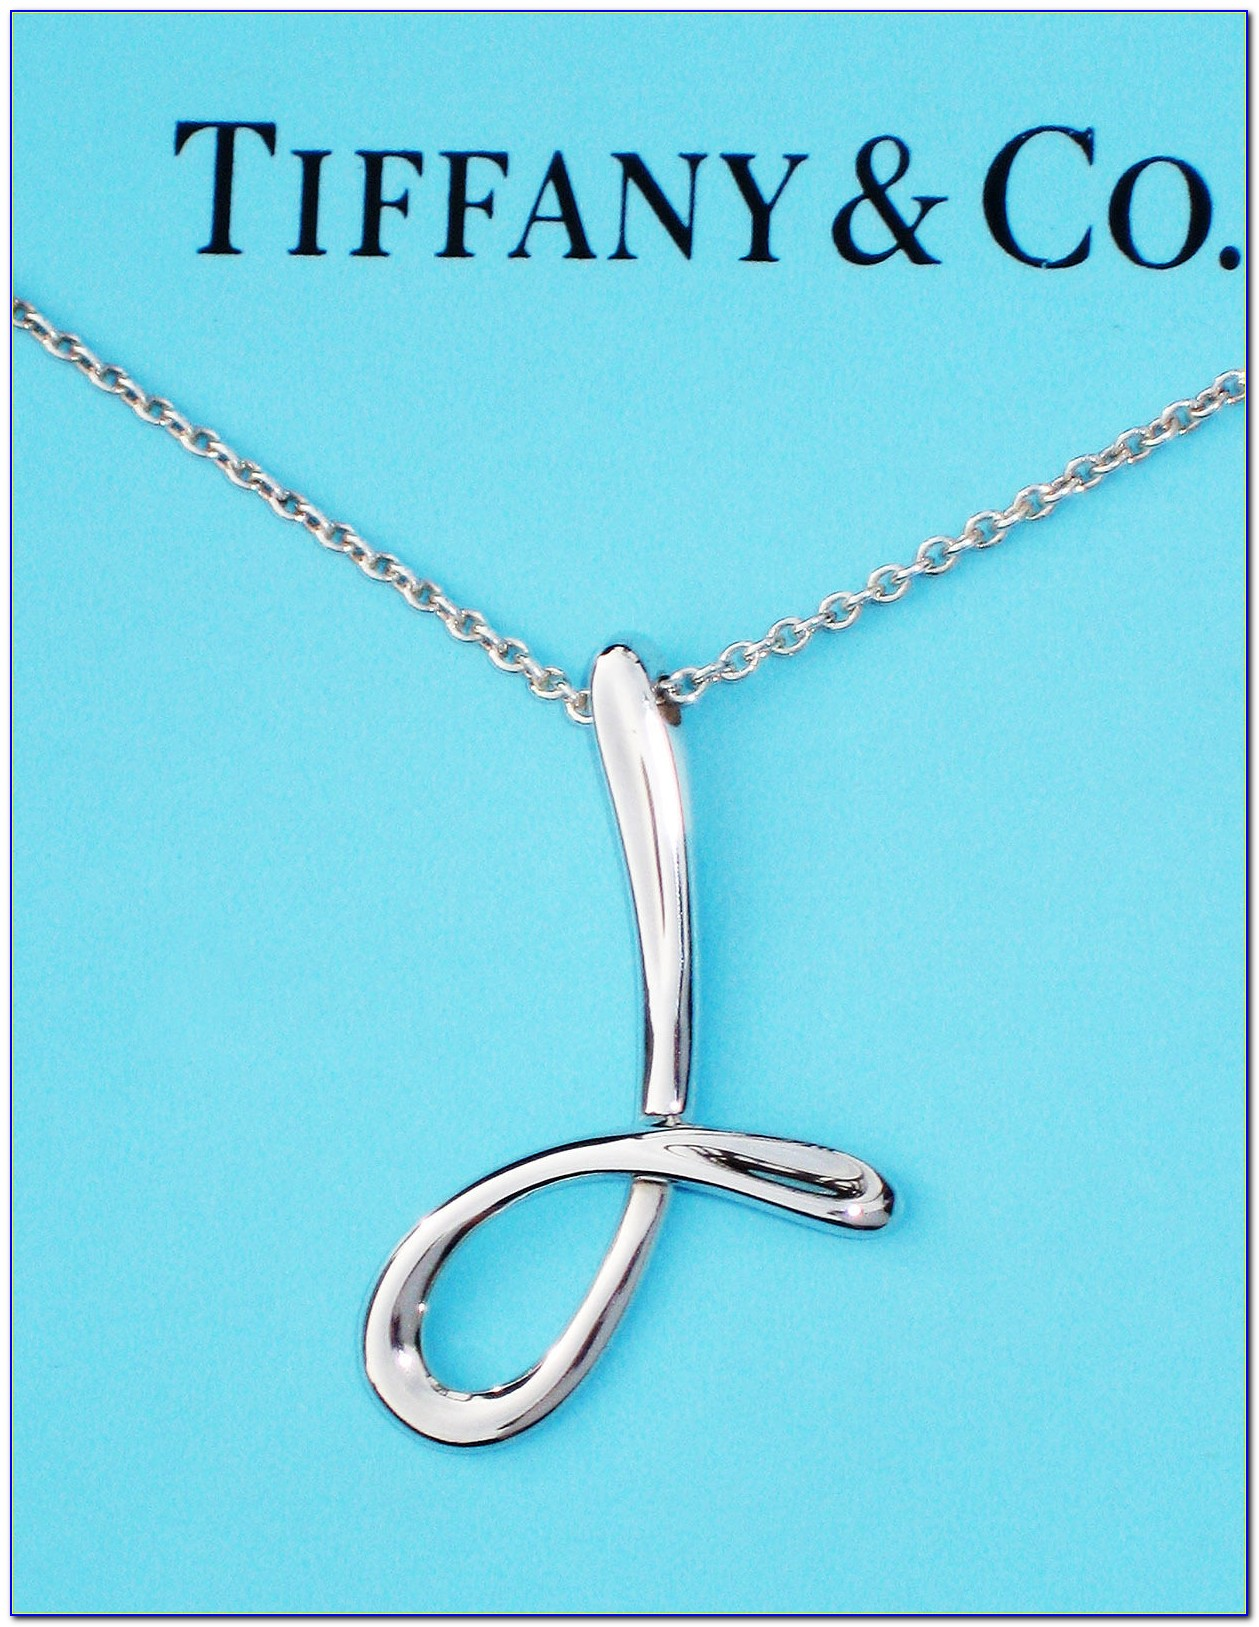 Tiffany Letter Necklace Chain